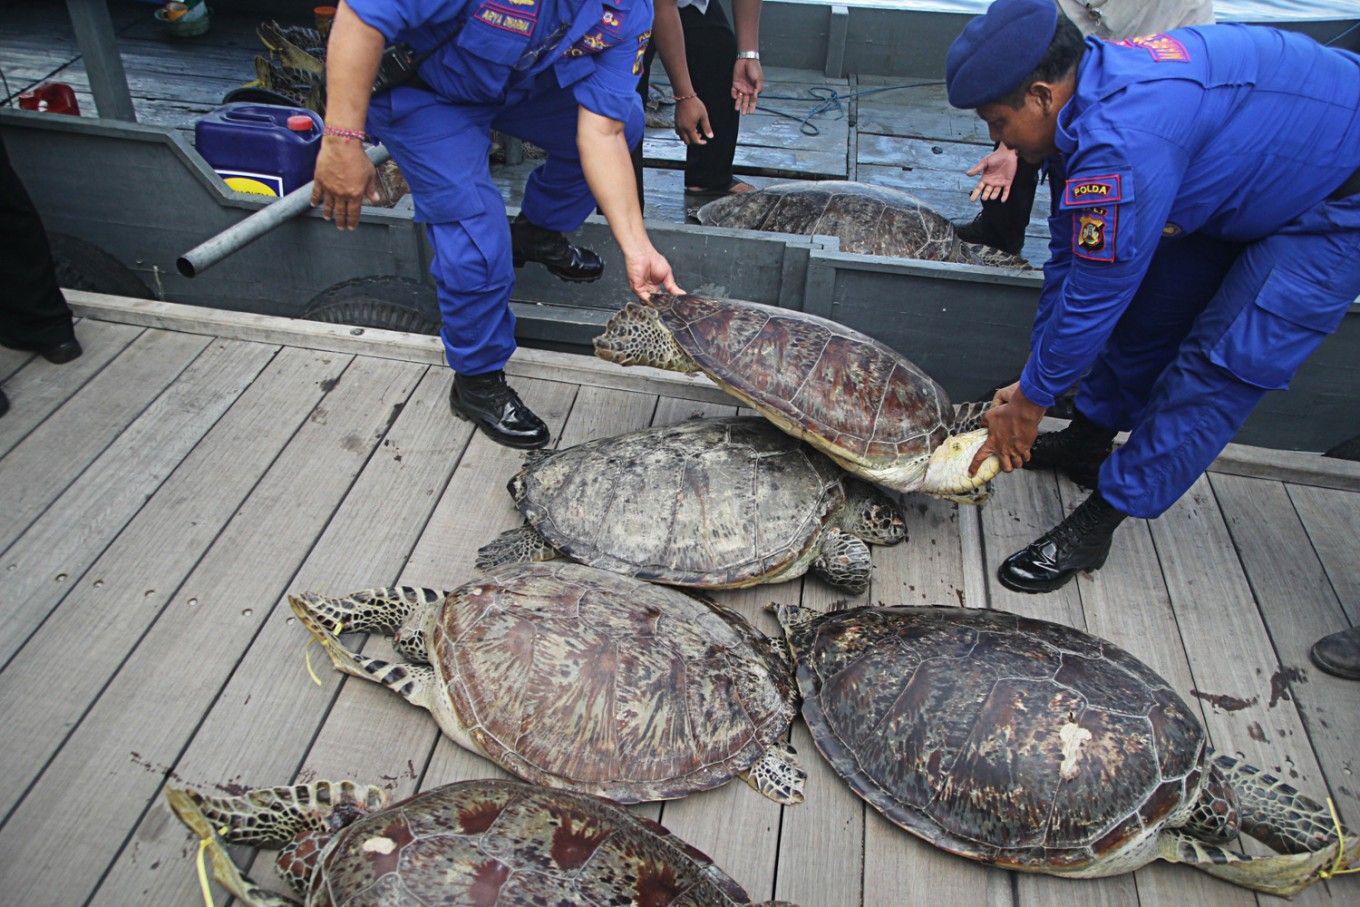 Bali Police thwart turtle smuggling attempt